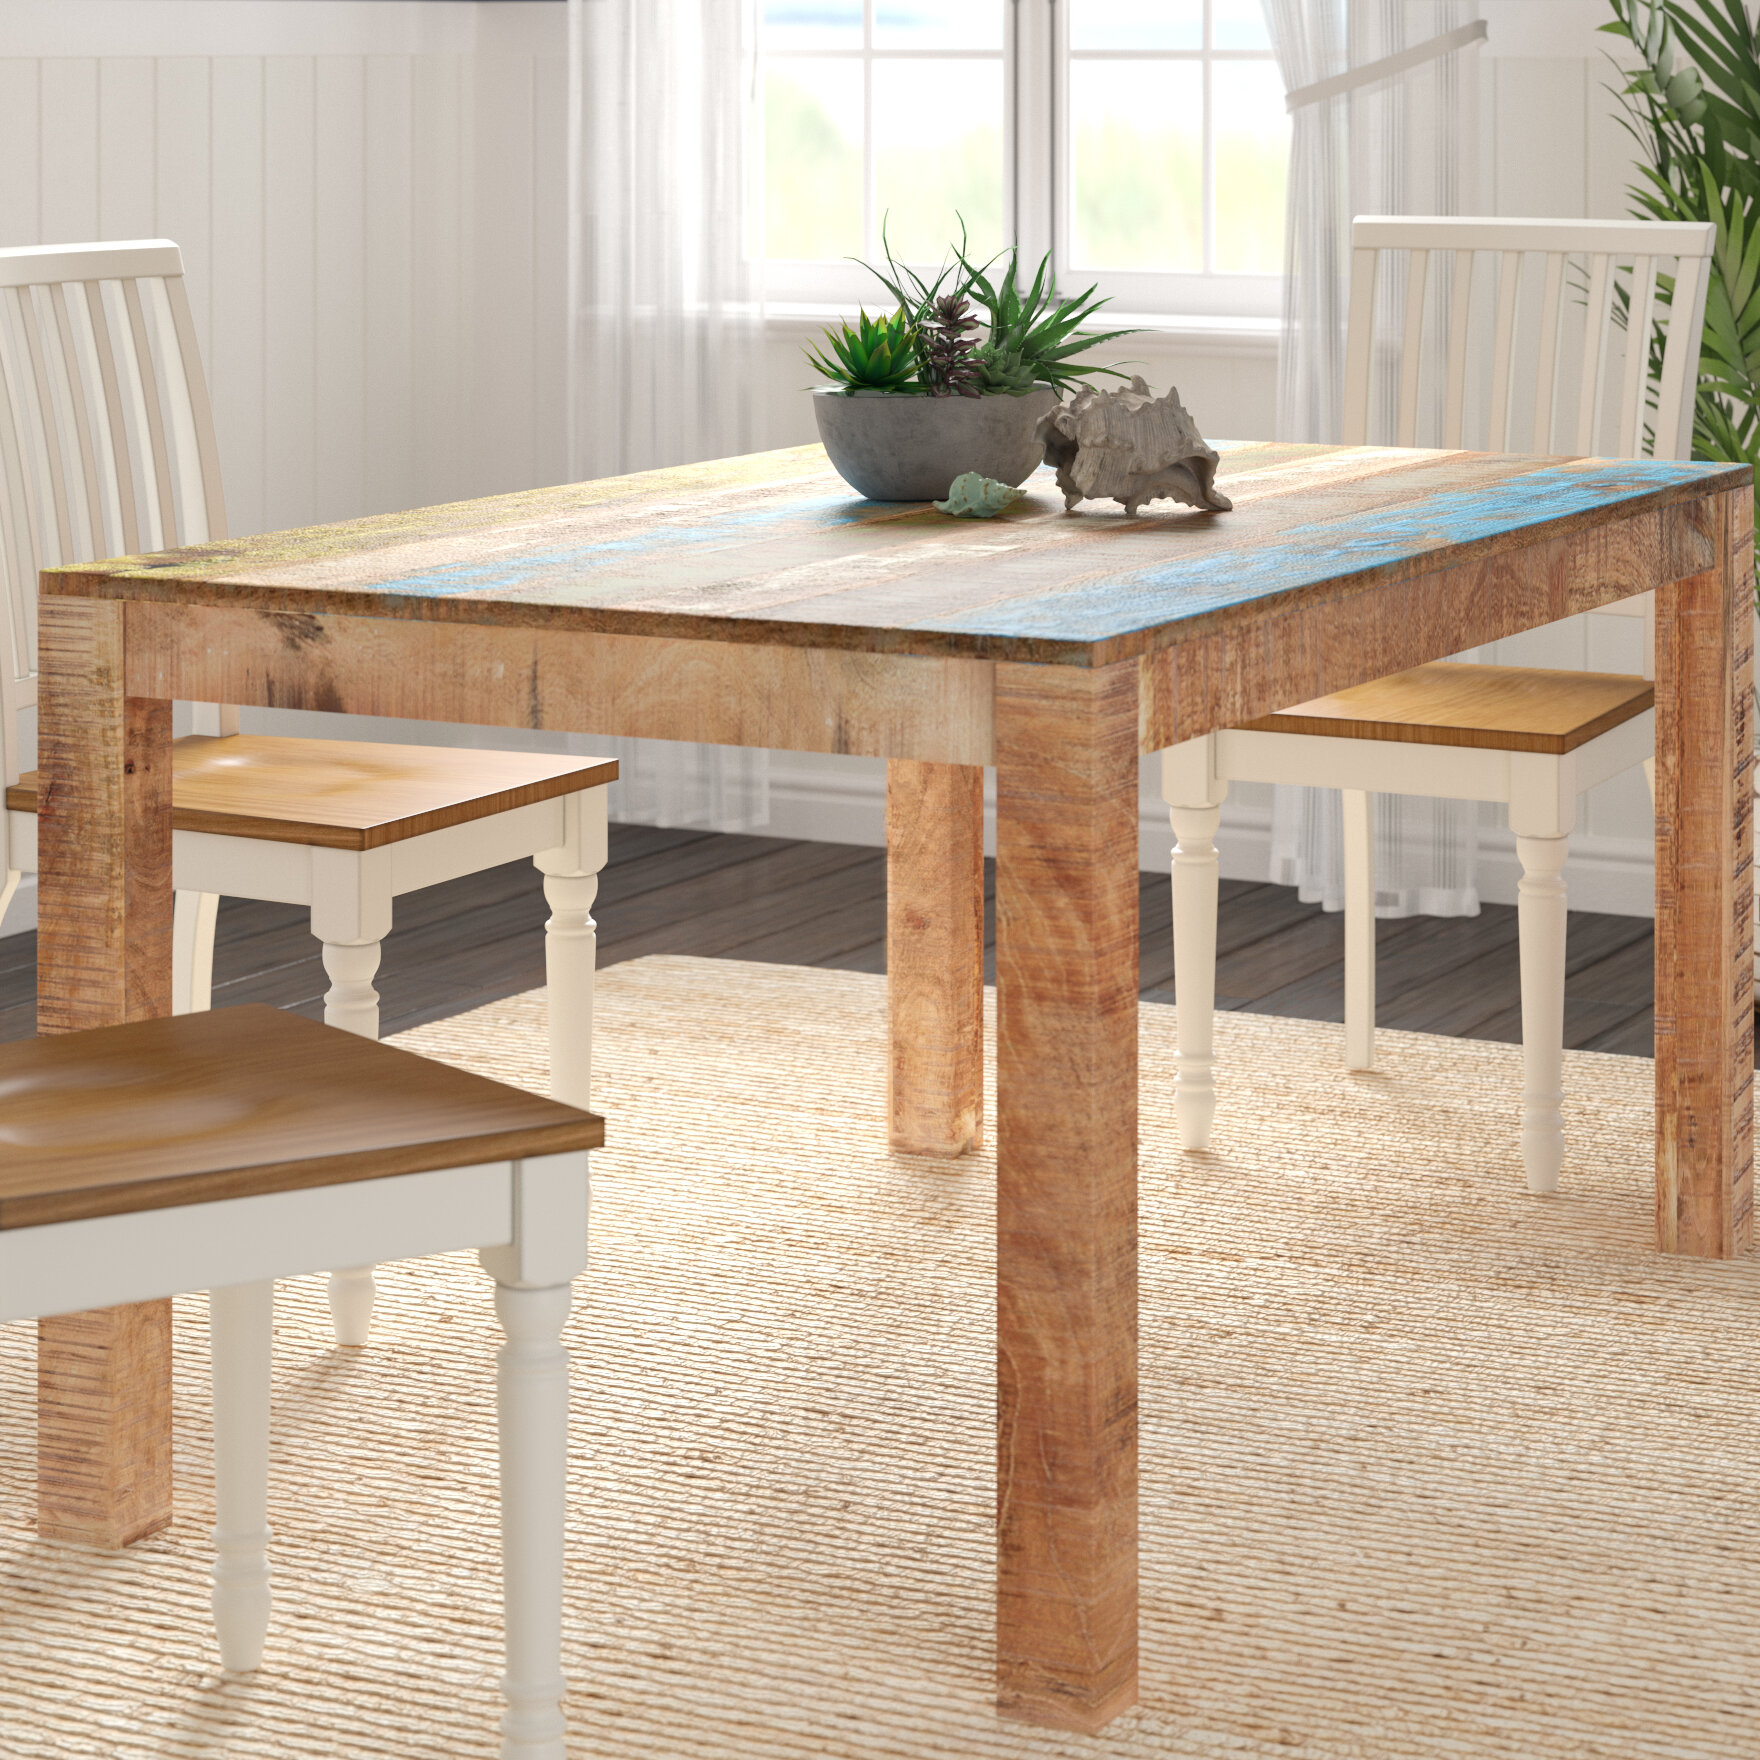 Highland dunes natascha dining table reviews wayfair